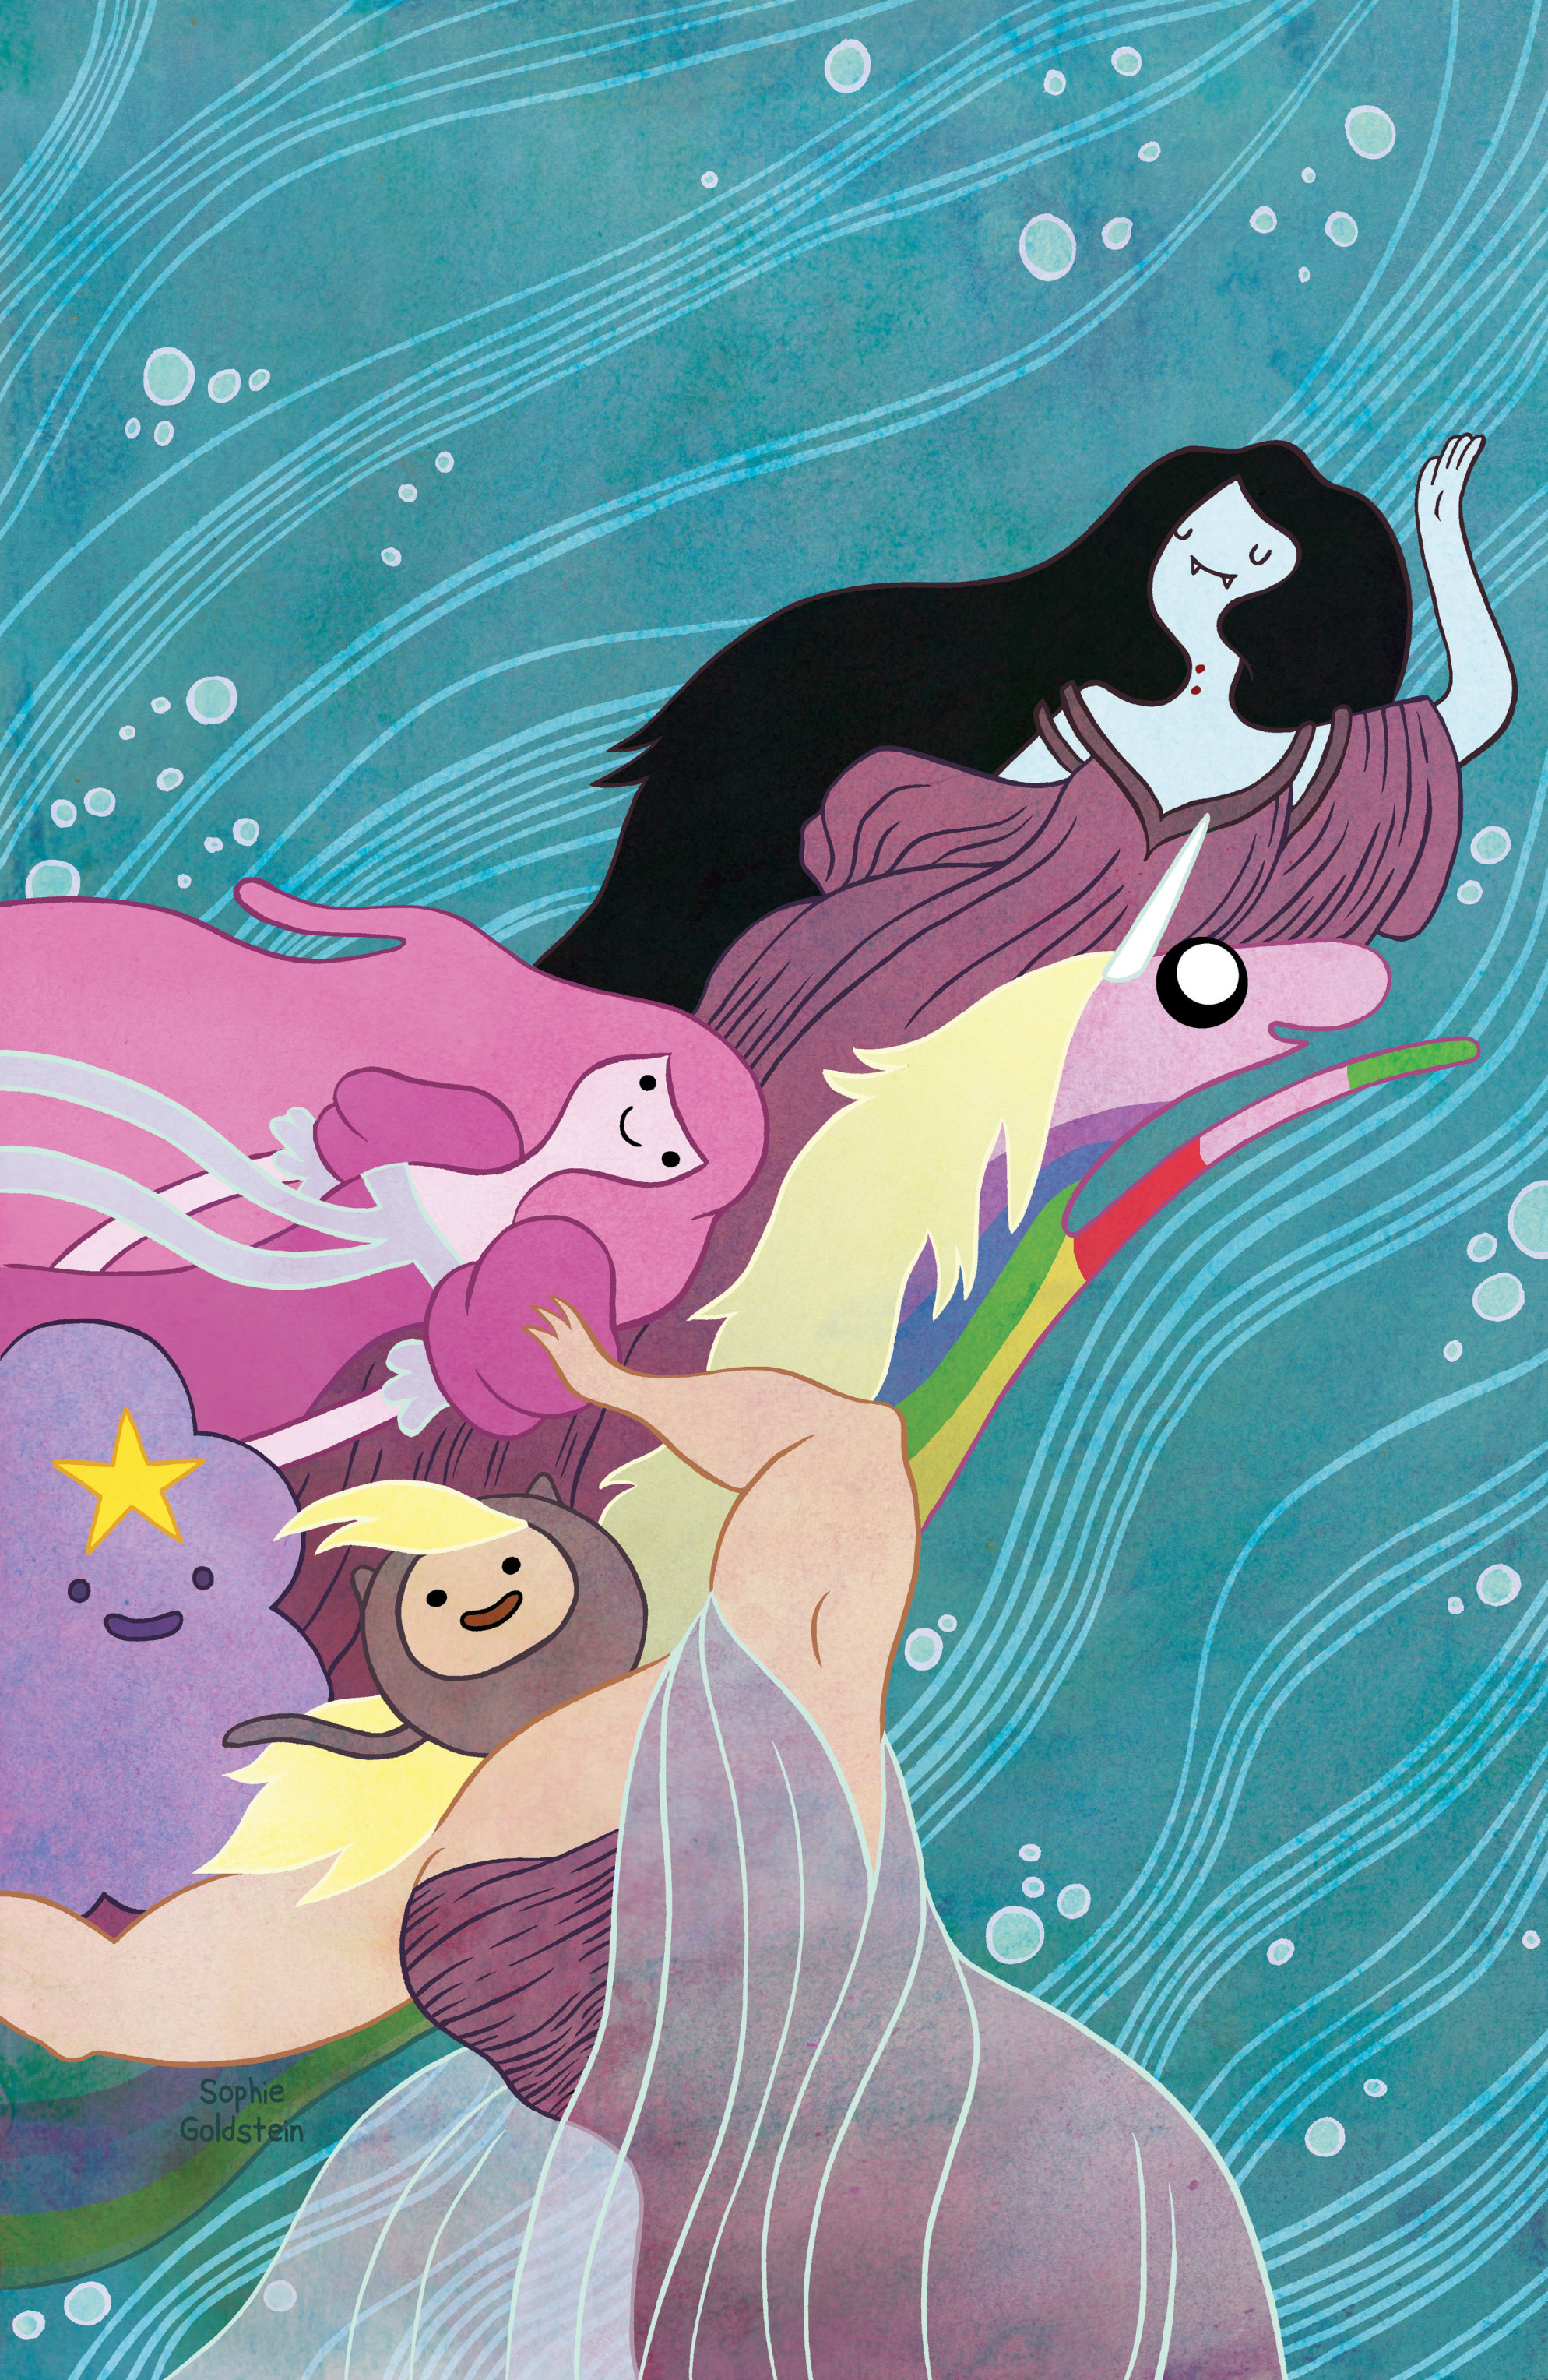 Read online Adventure Time comic -  Issue #16 - 3